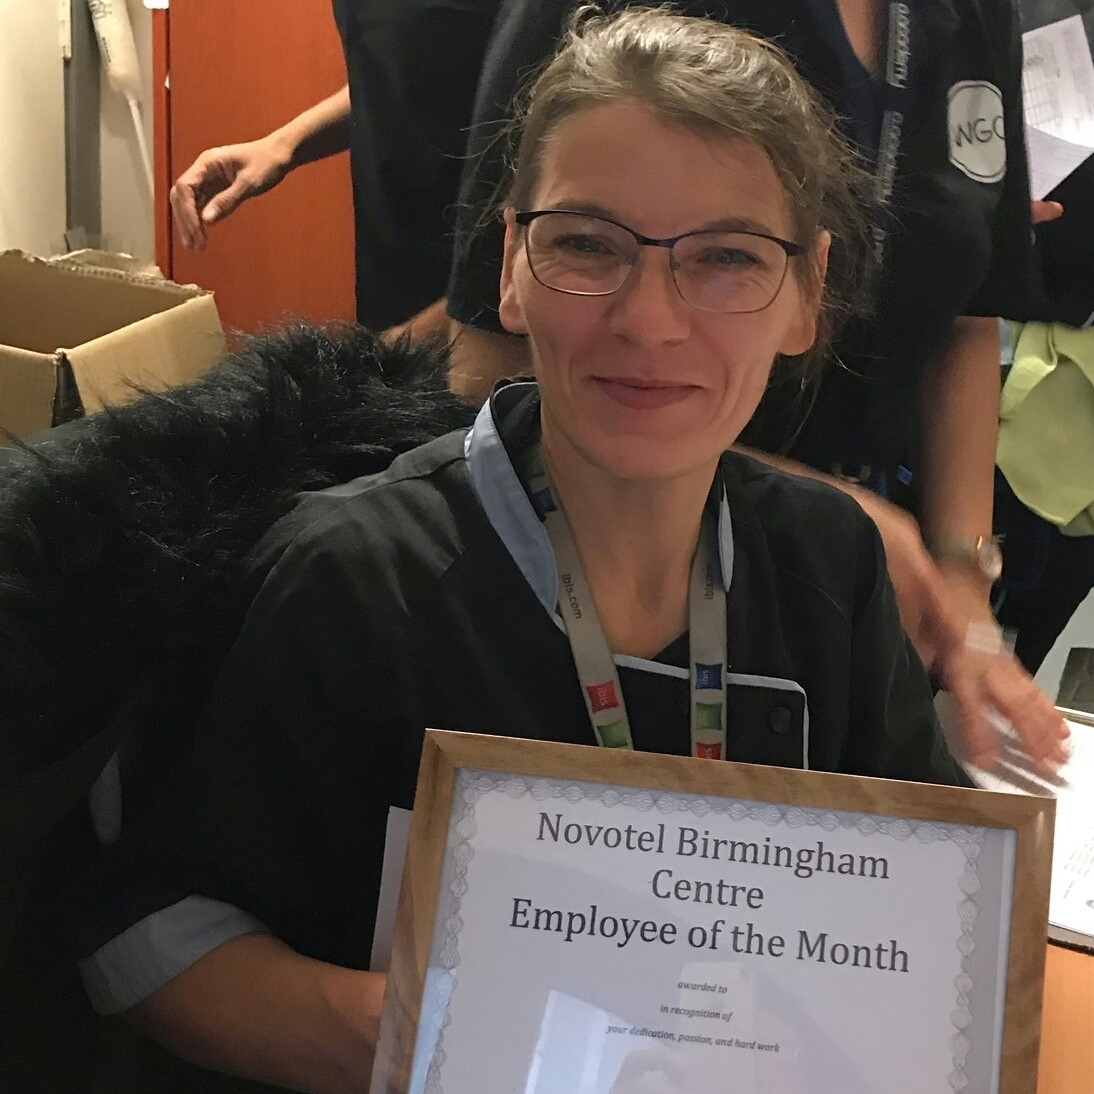 Well done to Dorota Melaniuk from Novotel Birmingham Centre for being named as Decembers employee of the month. Thank you for all your hard work on both Public areas and your executive rooms!  #Housekeeping #Hotels #OneBestWay #WGC #Team #LoveToClean  #HotelHousekeepingpic.twitter.com/MpY7kHYauS